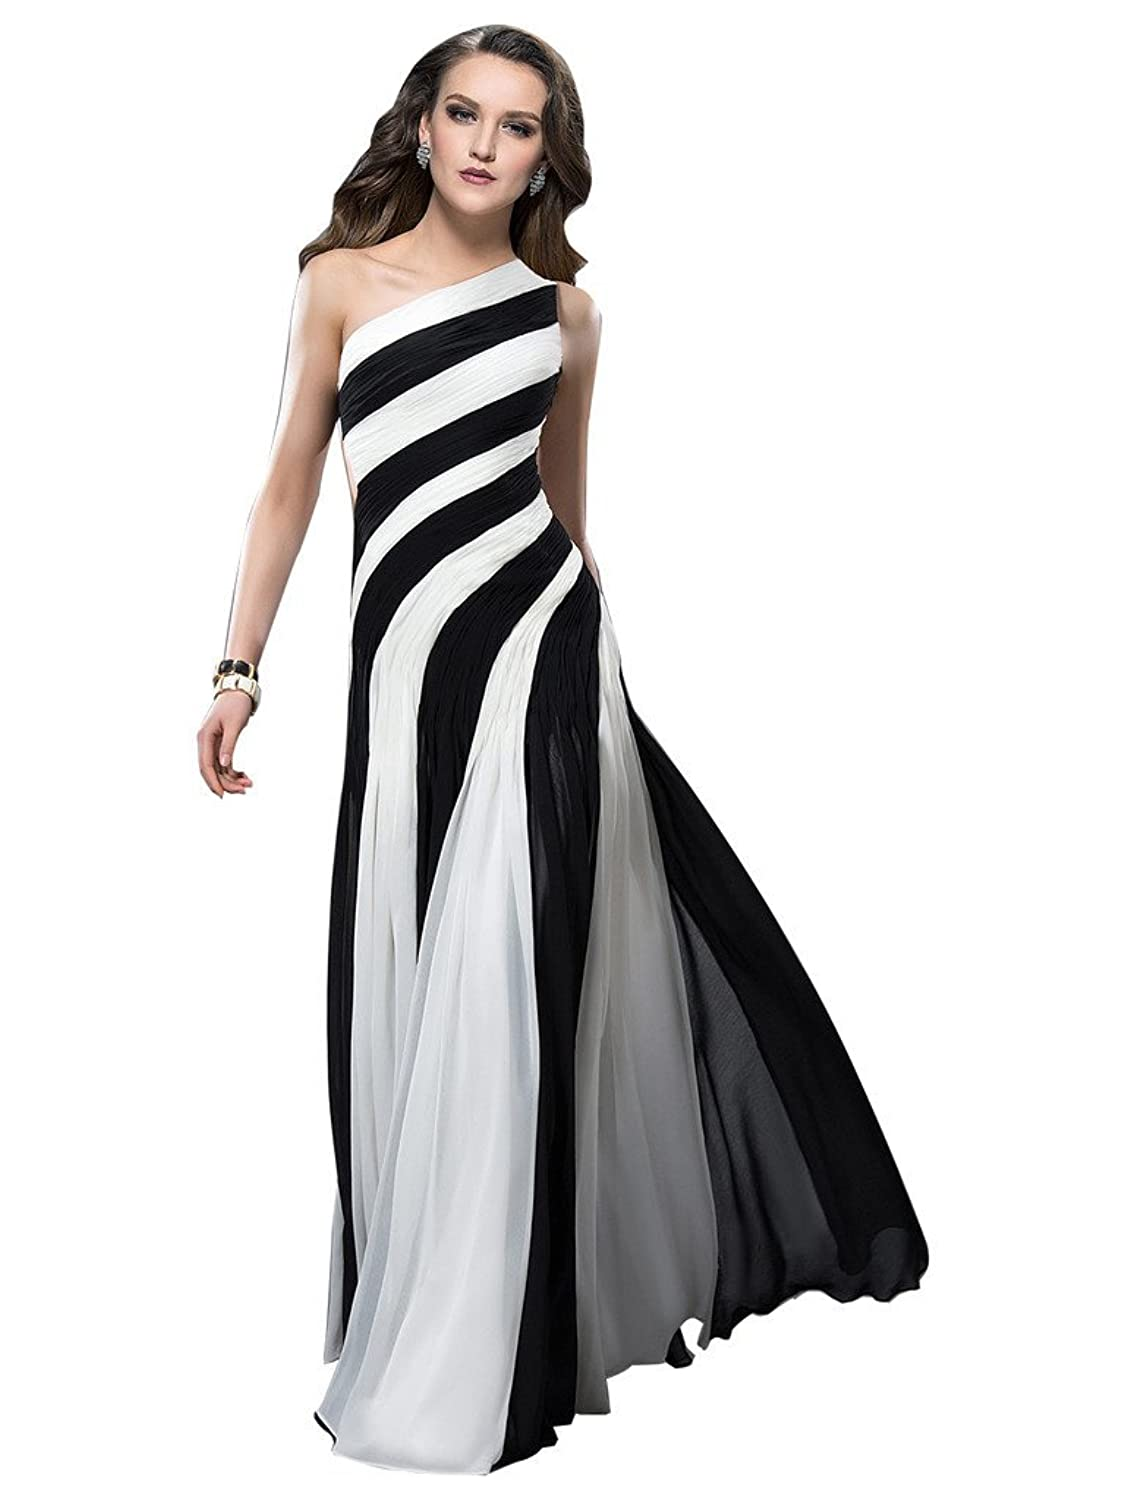 CLOCOLRO Women's Designer Long Tulle One Shoulder Black and White Evening Dresses Bridesmaids Gowns for Girls